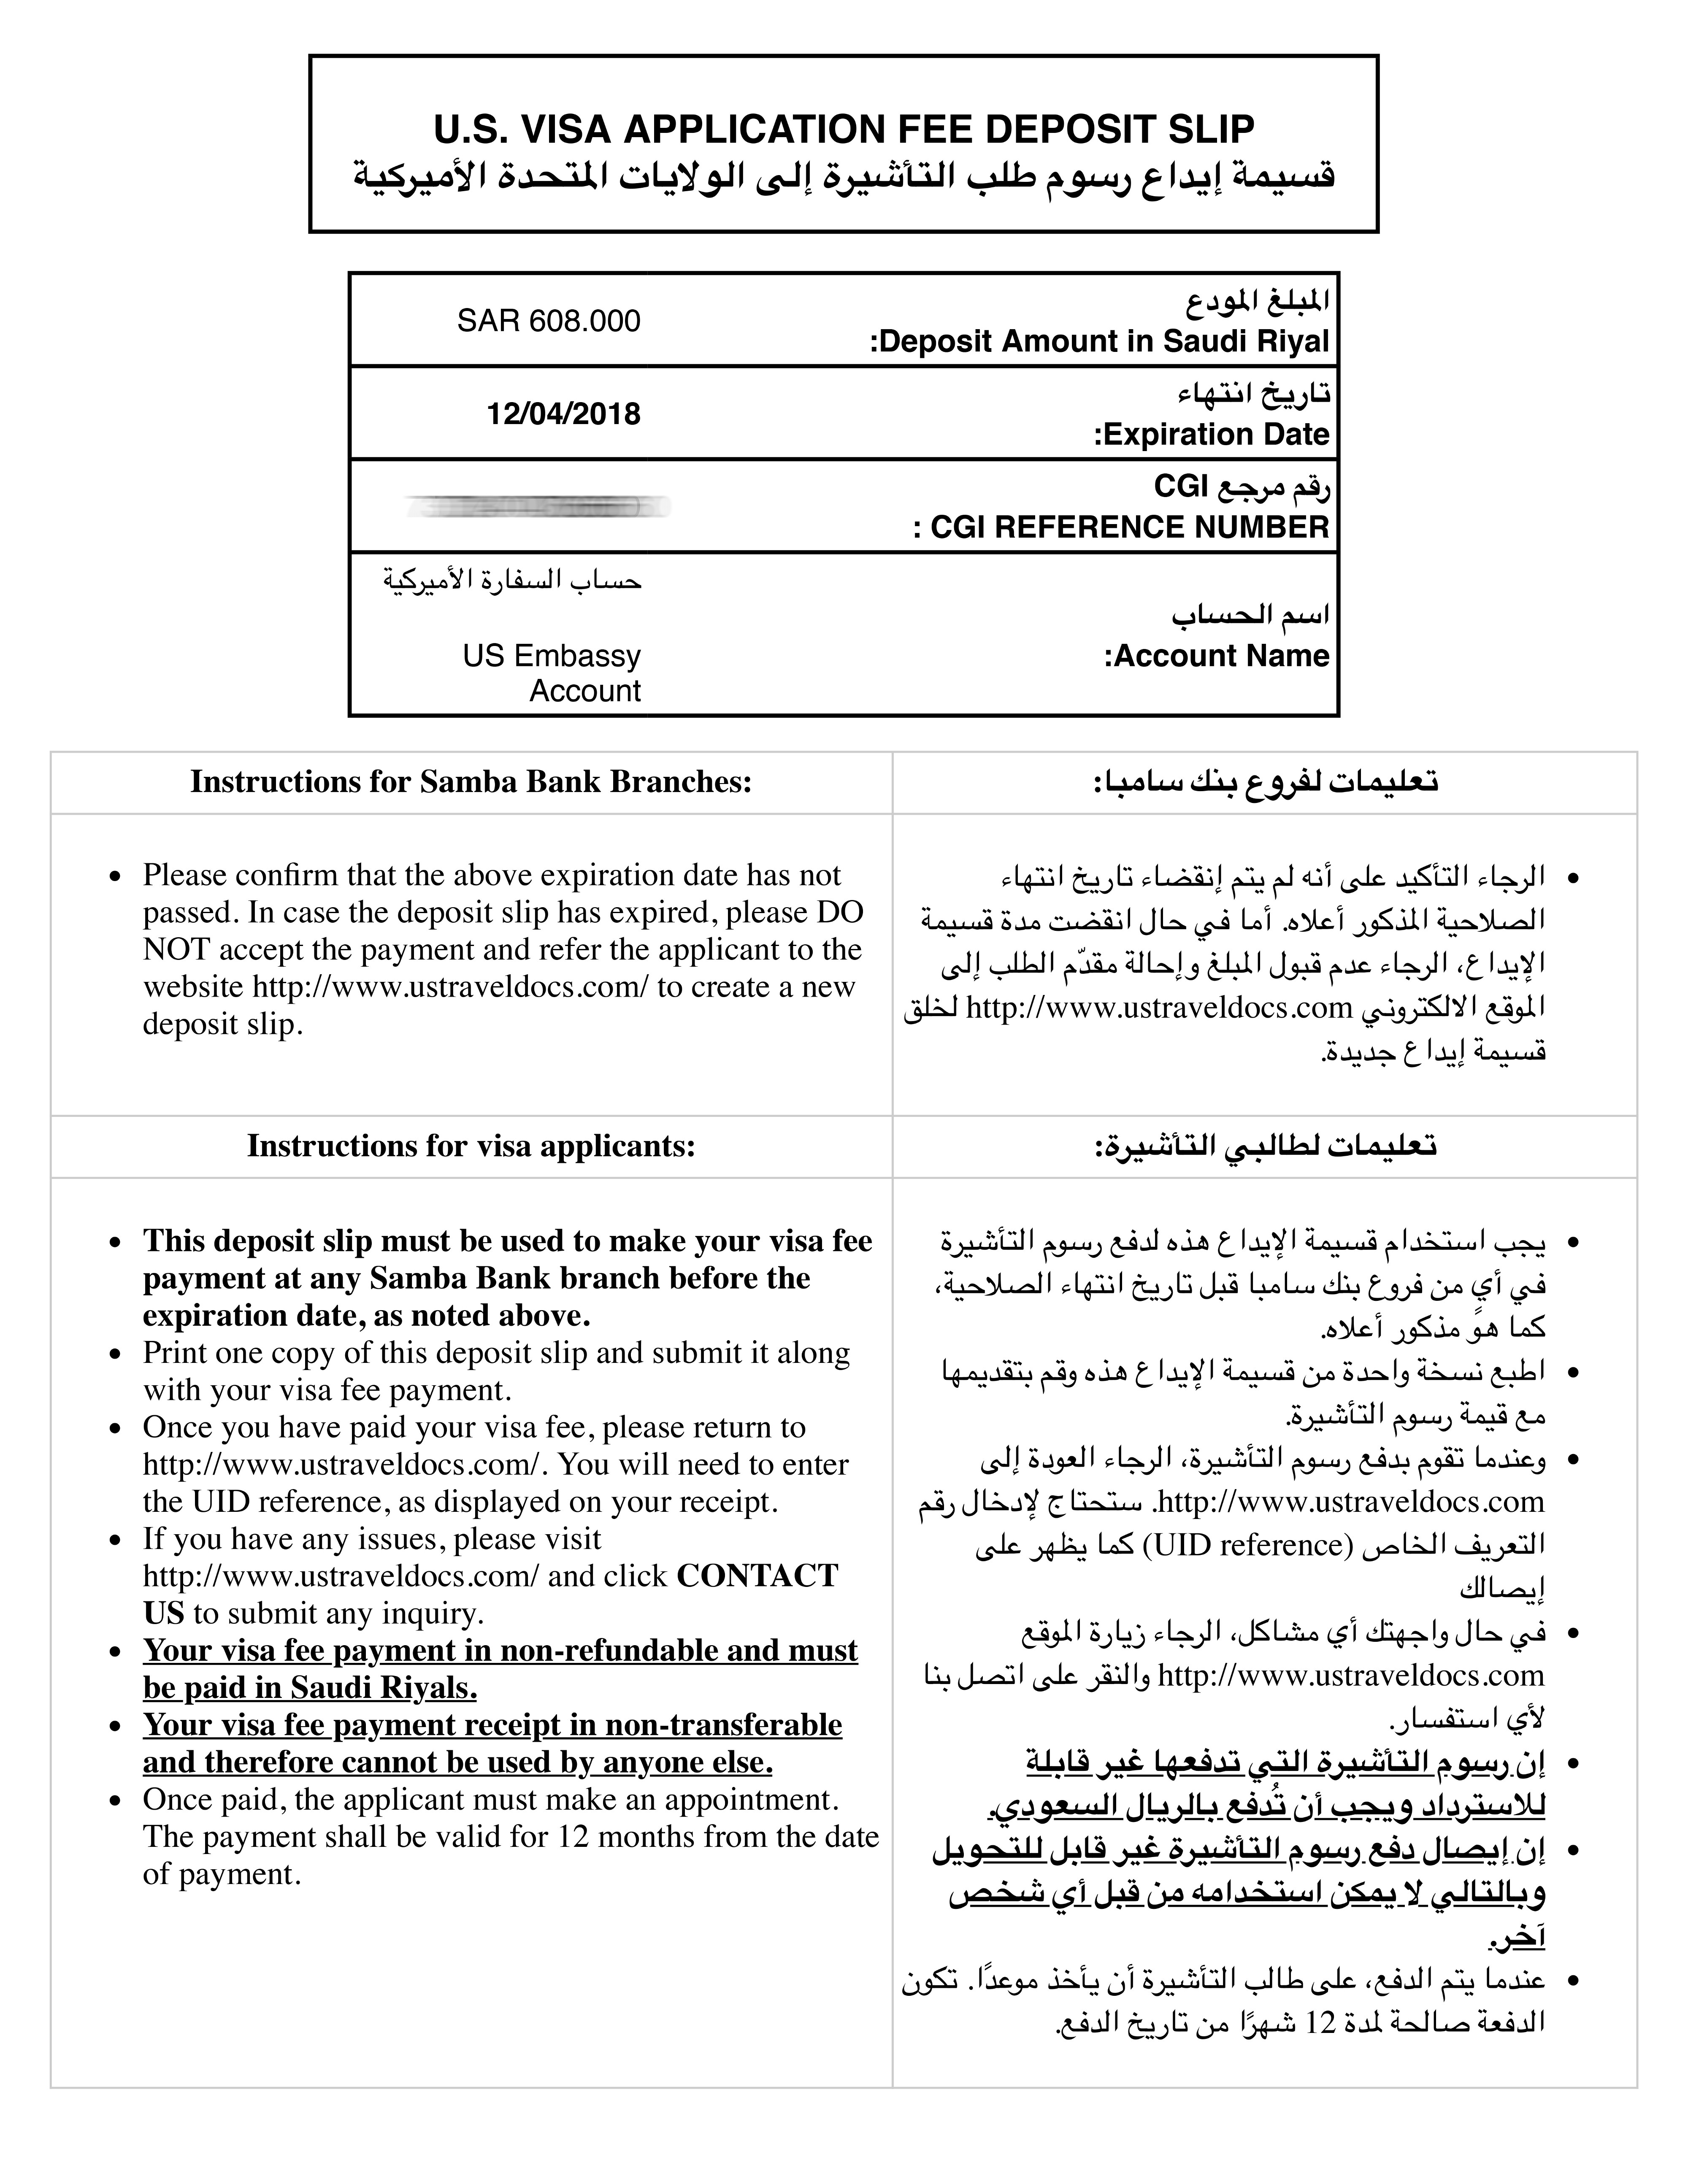 B1 Visa For The Us From Saudi Arabia